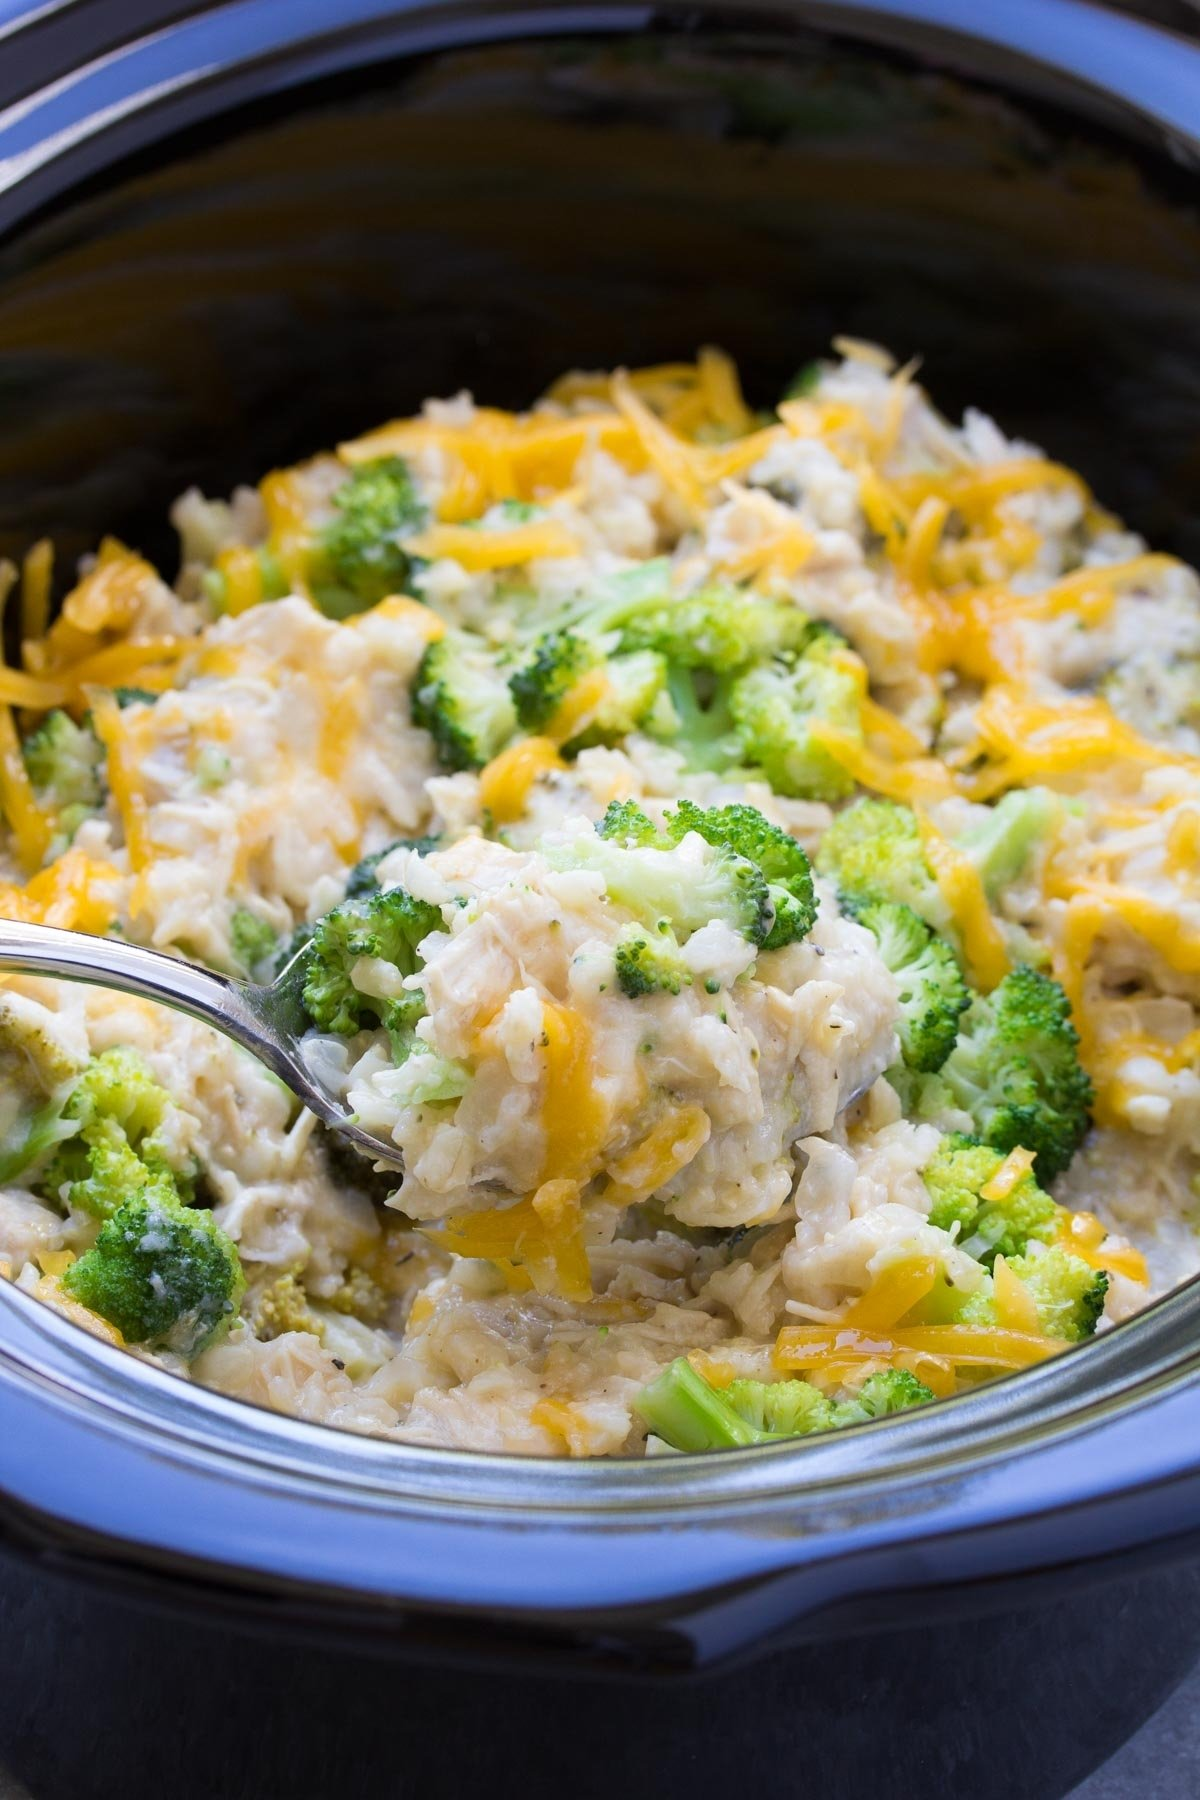 10 Trendy Chicken And Rice Dinner Ideas slow cooker chicken broccoli and rice casserole kristines kitchen